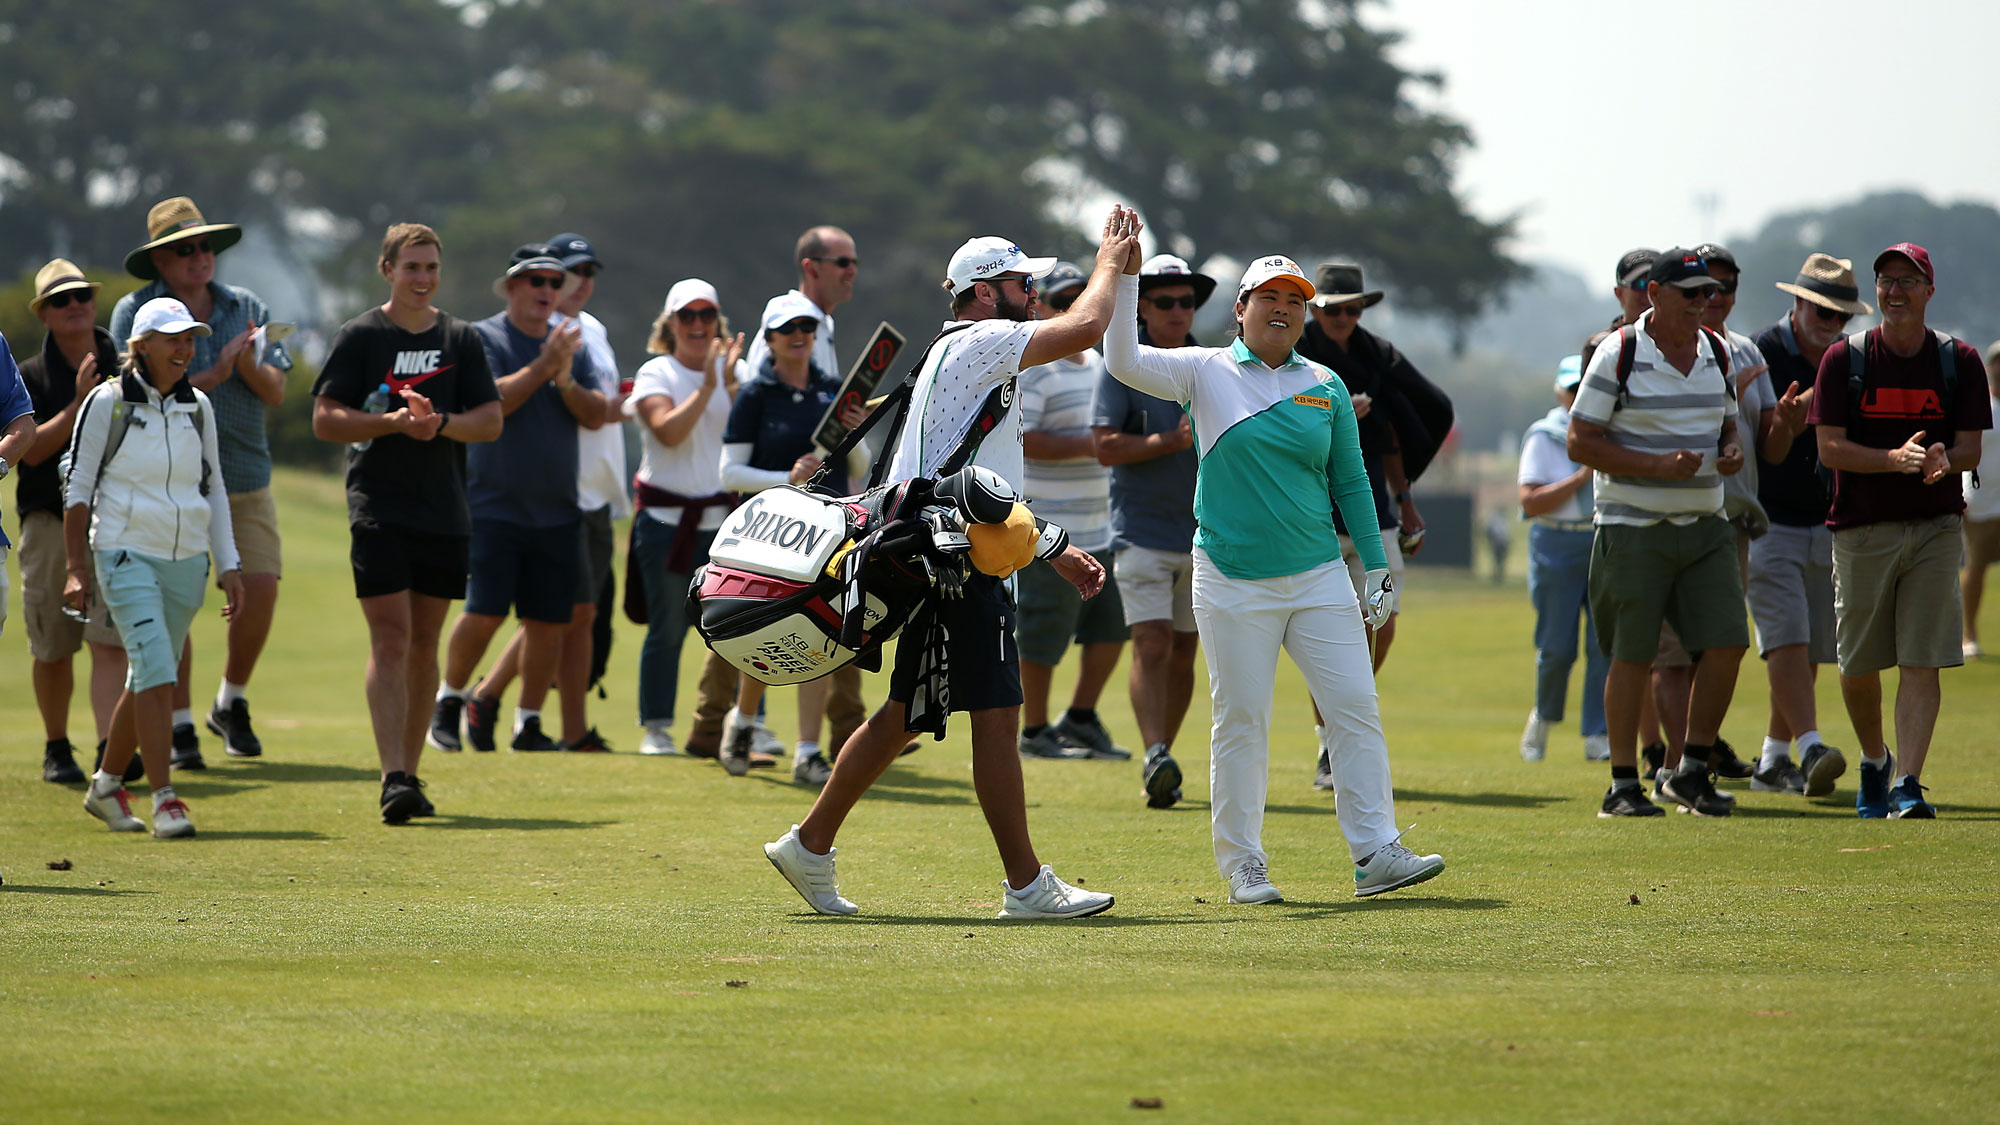 Inbee Park celebrates during Round 1 of ISPS Handa Vic Open